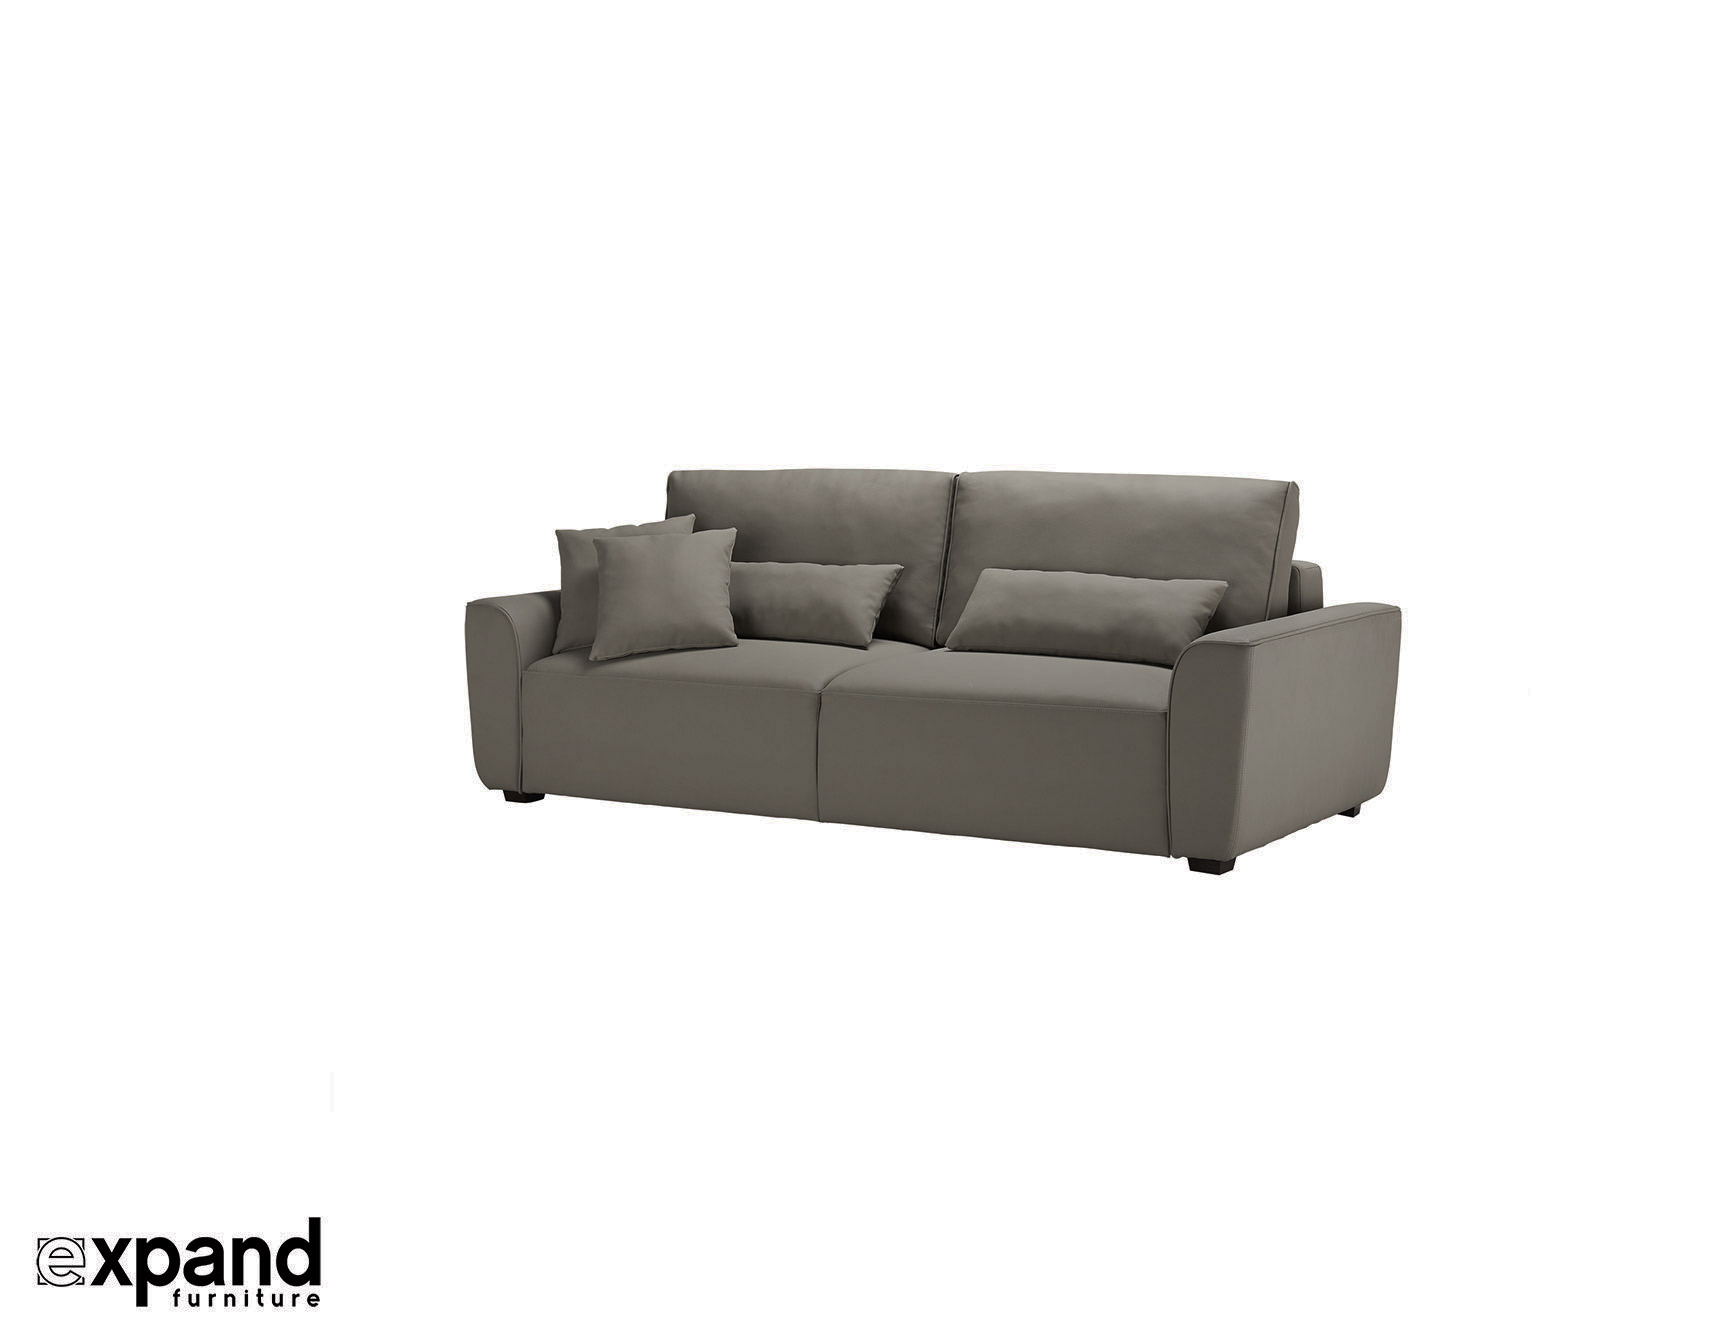 Cloud modern queen sofa bed sleeper expand furniture for Sectional sleeper sofa with queen bed